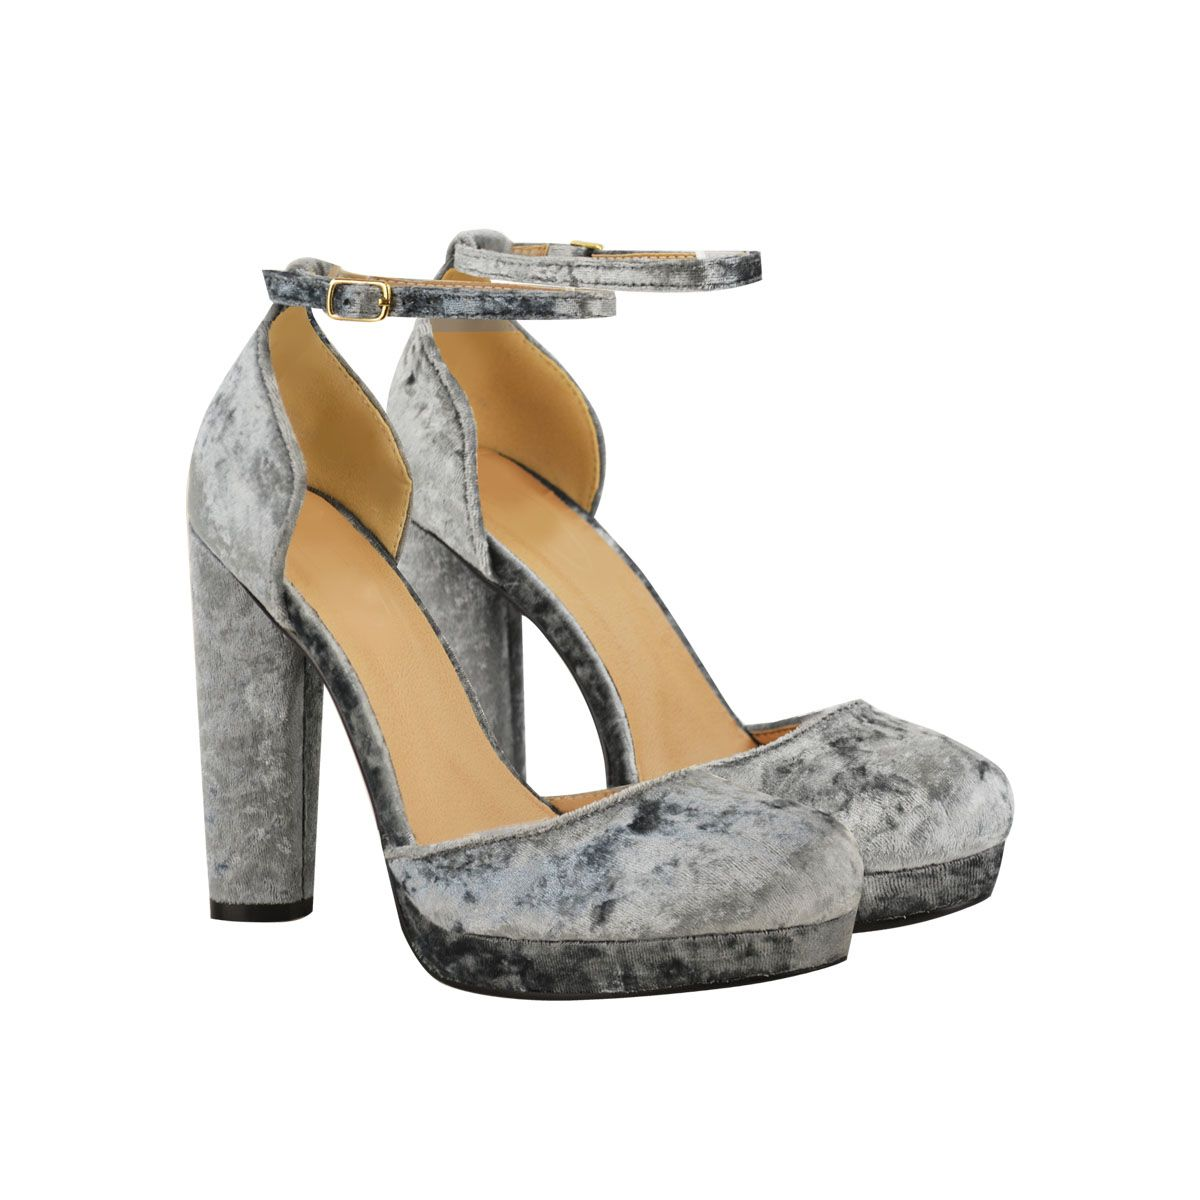 b060e1d1722 Grey Crushed Velvet Strappy Closed Toe High Heel Platform Shoes - Dotty